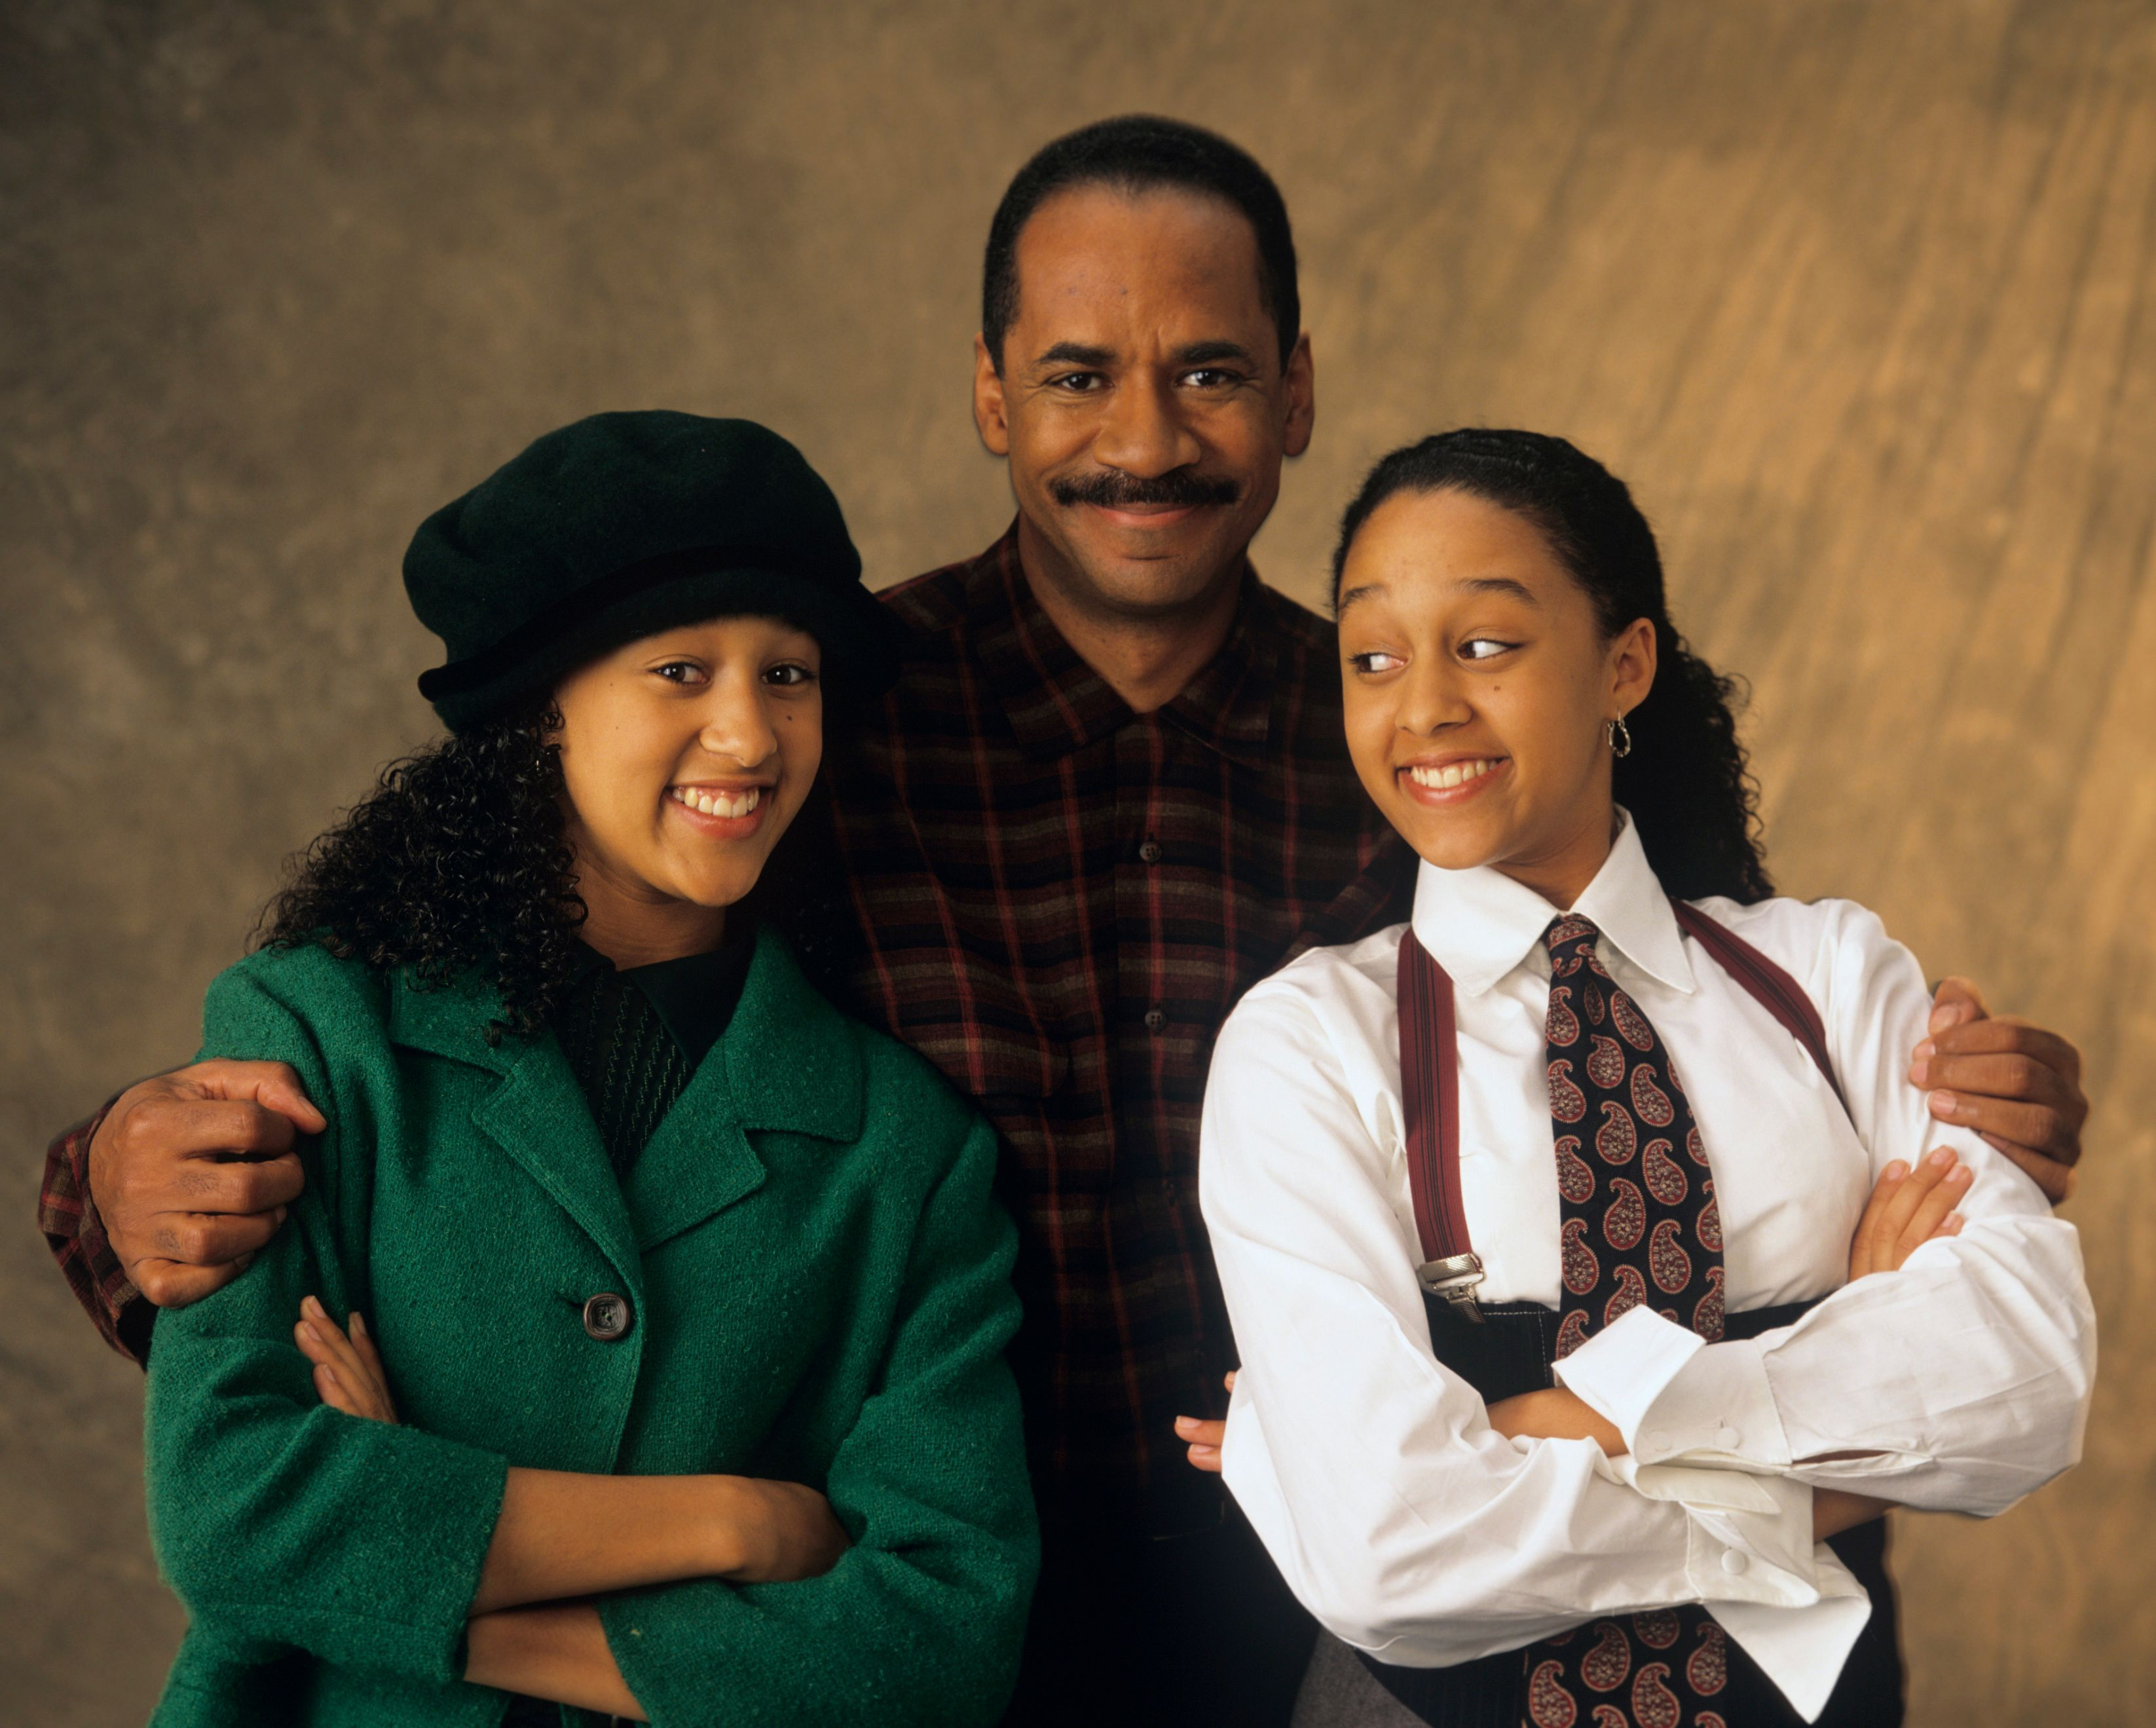 """A picture of Tim Reid, Tia and Tamera Mowry from """"Sister, Sister""""   Photo: Getty Images"""